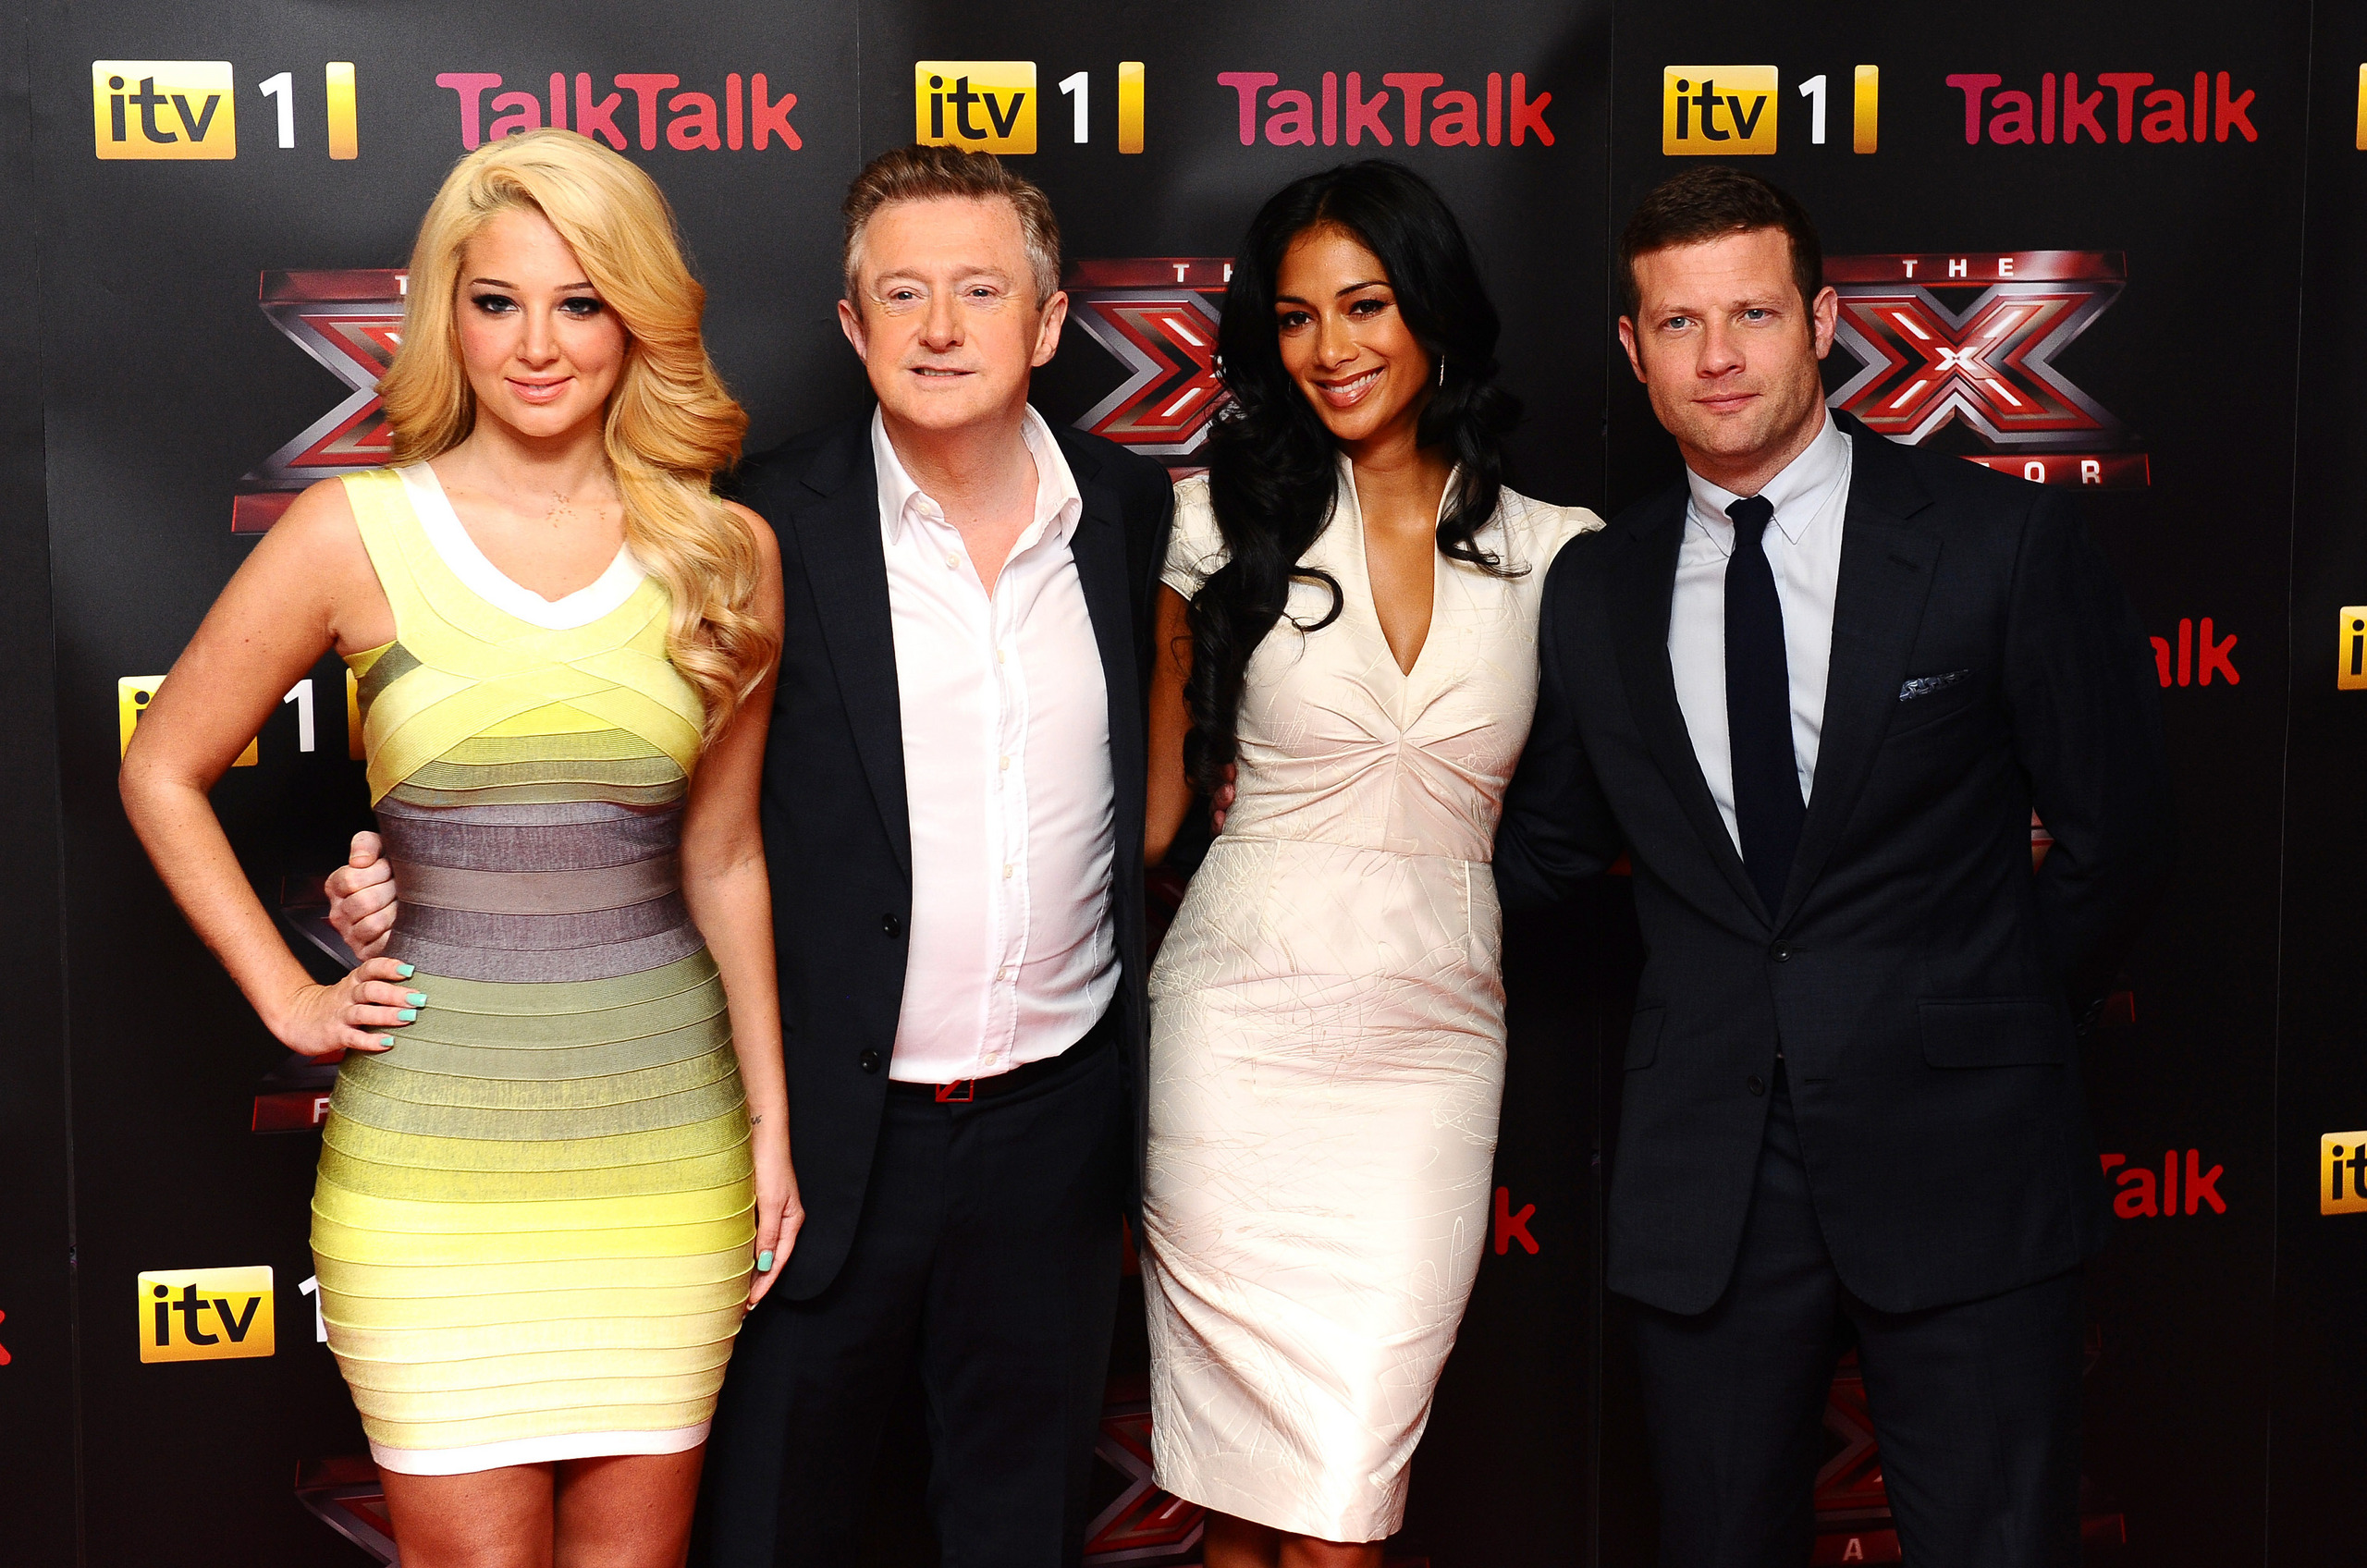 Arriving At The X Factor Press Launch At The Corinthia Hotel In London [16 August 2012]